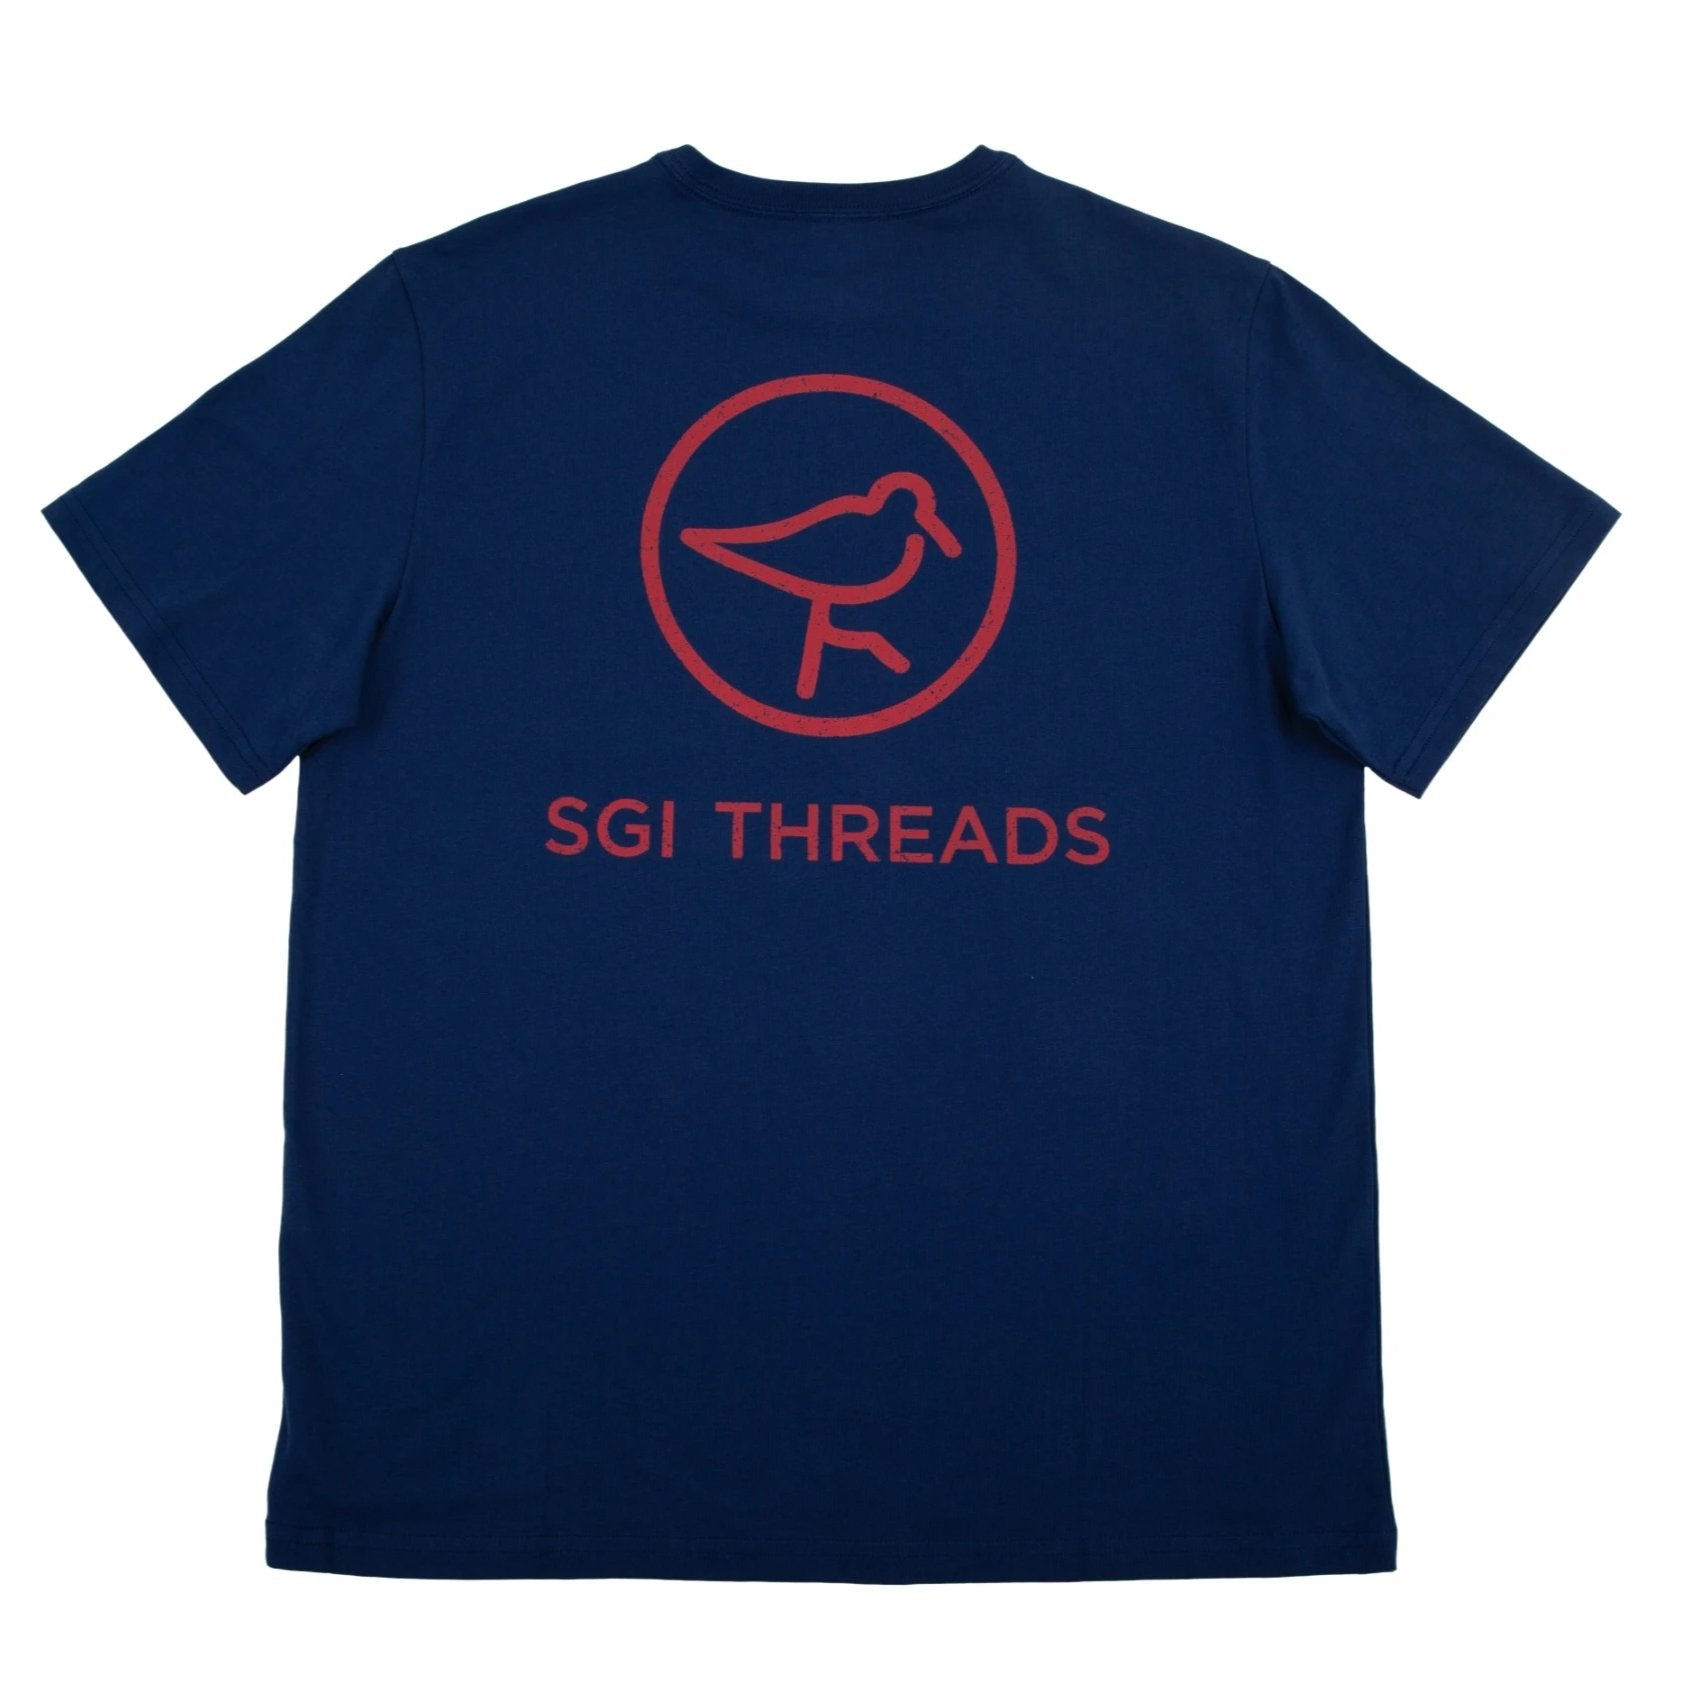 DISTRESSED SGI THREADS SHORT-SLEEVE TEE NAVY/RED